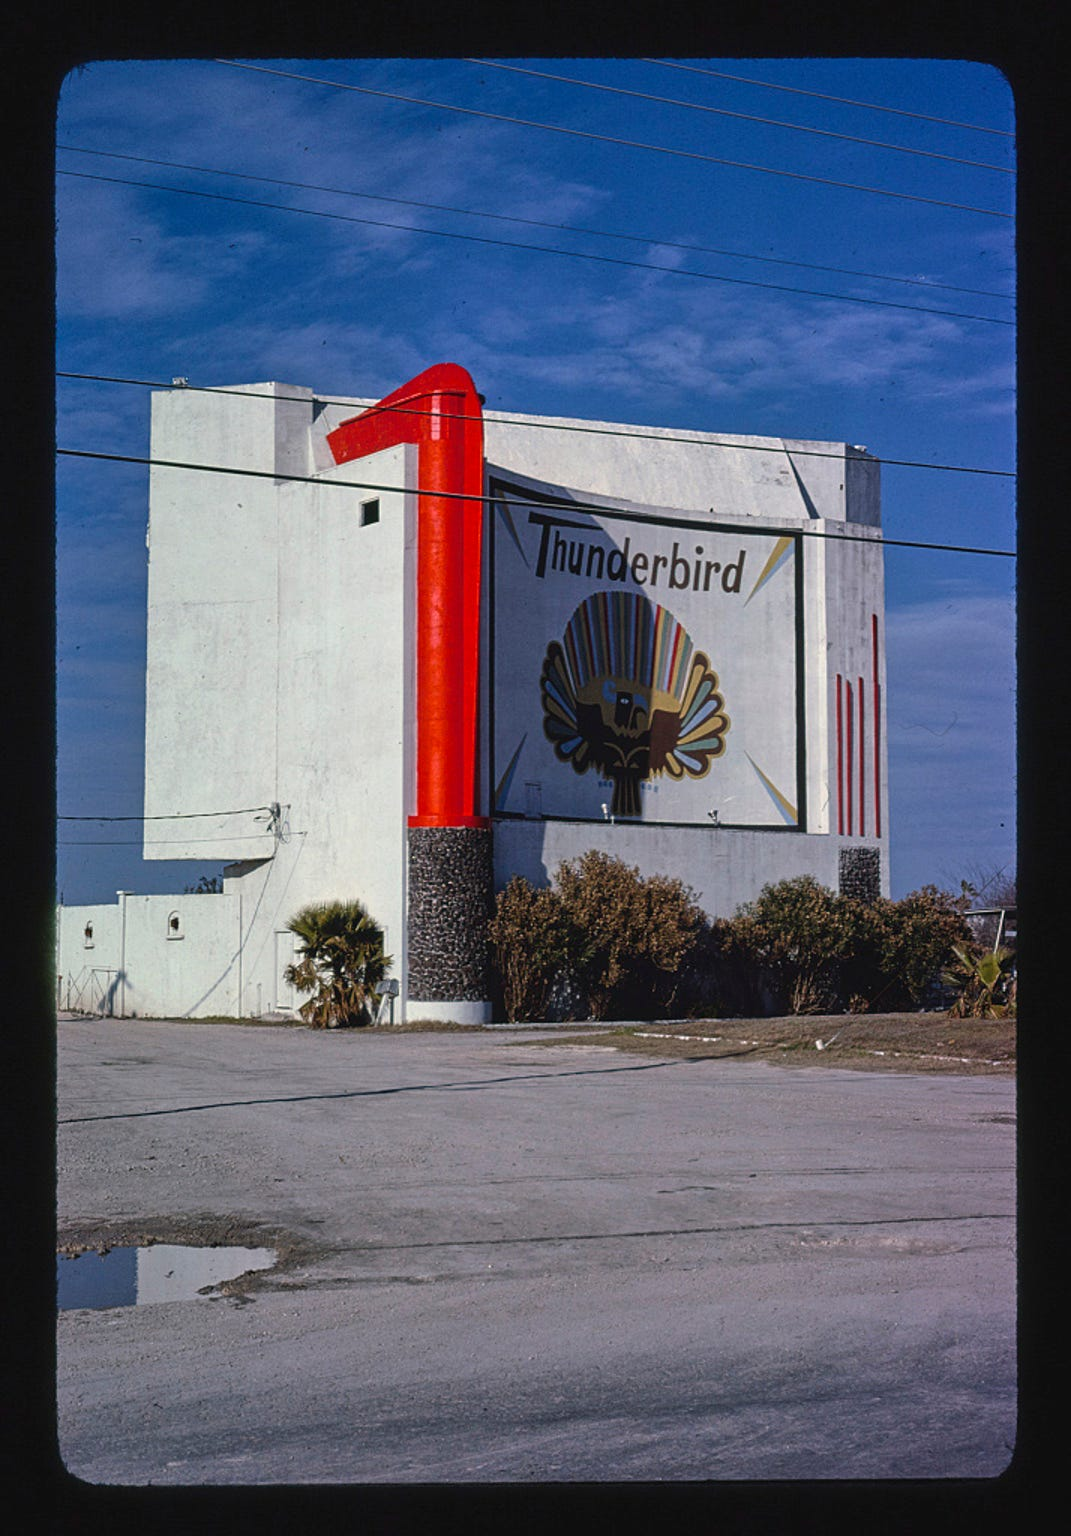 Thunderbird Drive-in Theater at 4910 Leopard Street in Corpus Christi in 1979. Photo from the John Margolies Roadside America Photograph Archive held by the Library of Congress.